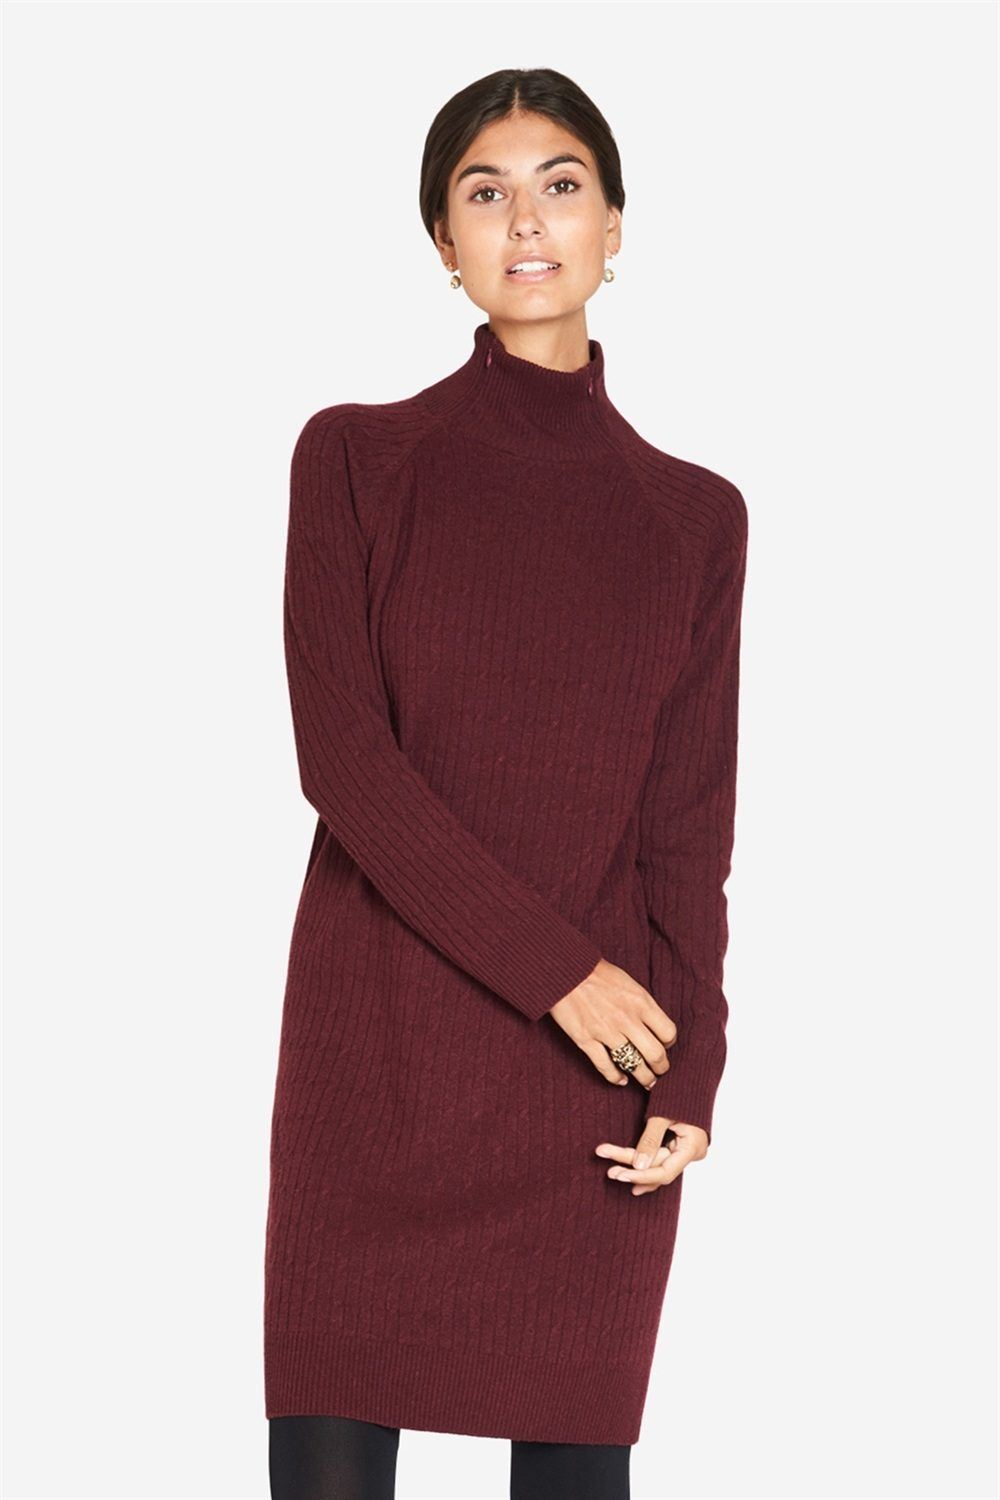 Burgundy nursing dress in wool and cable knit, front view